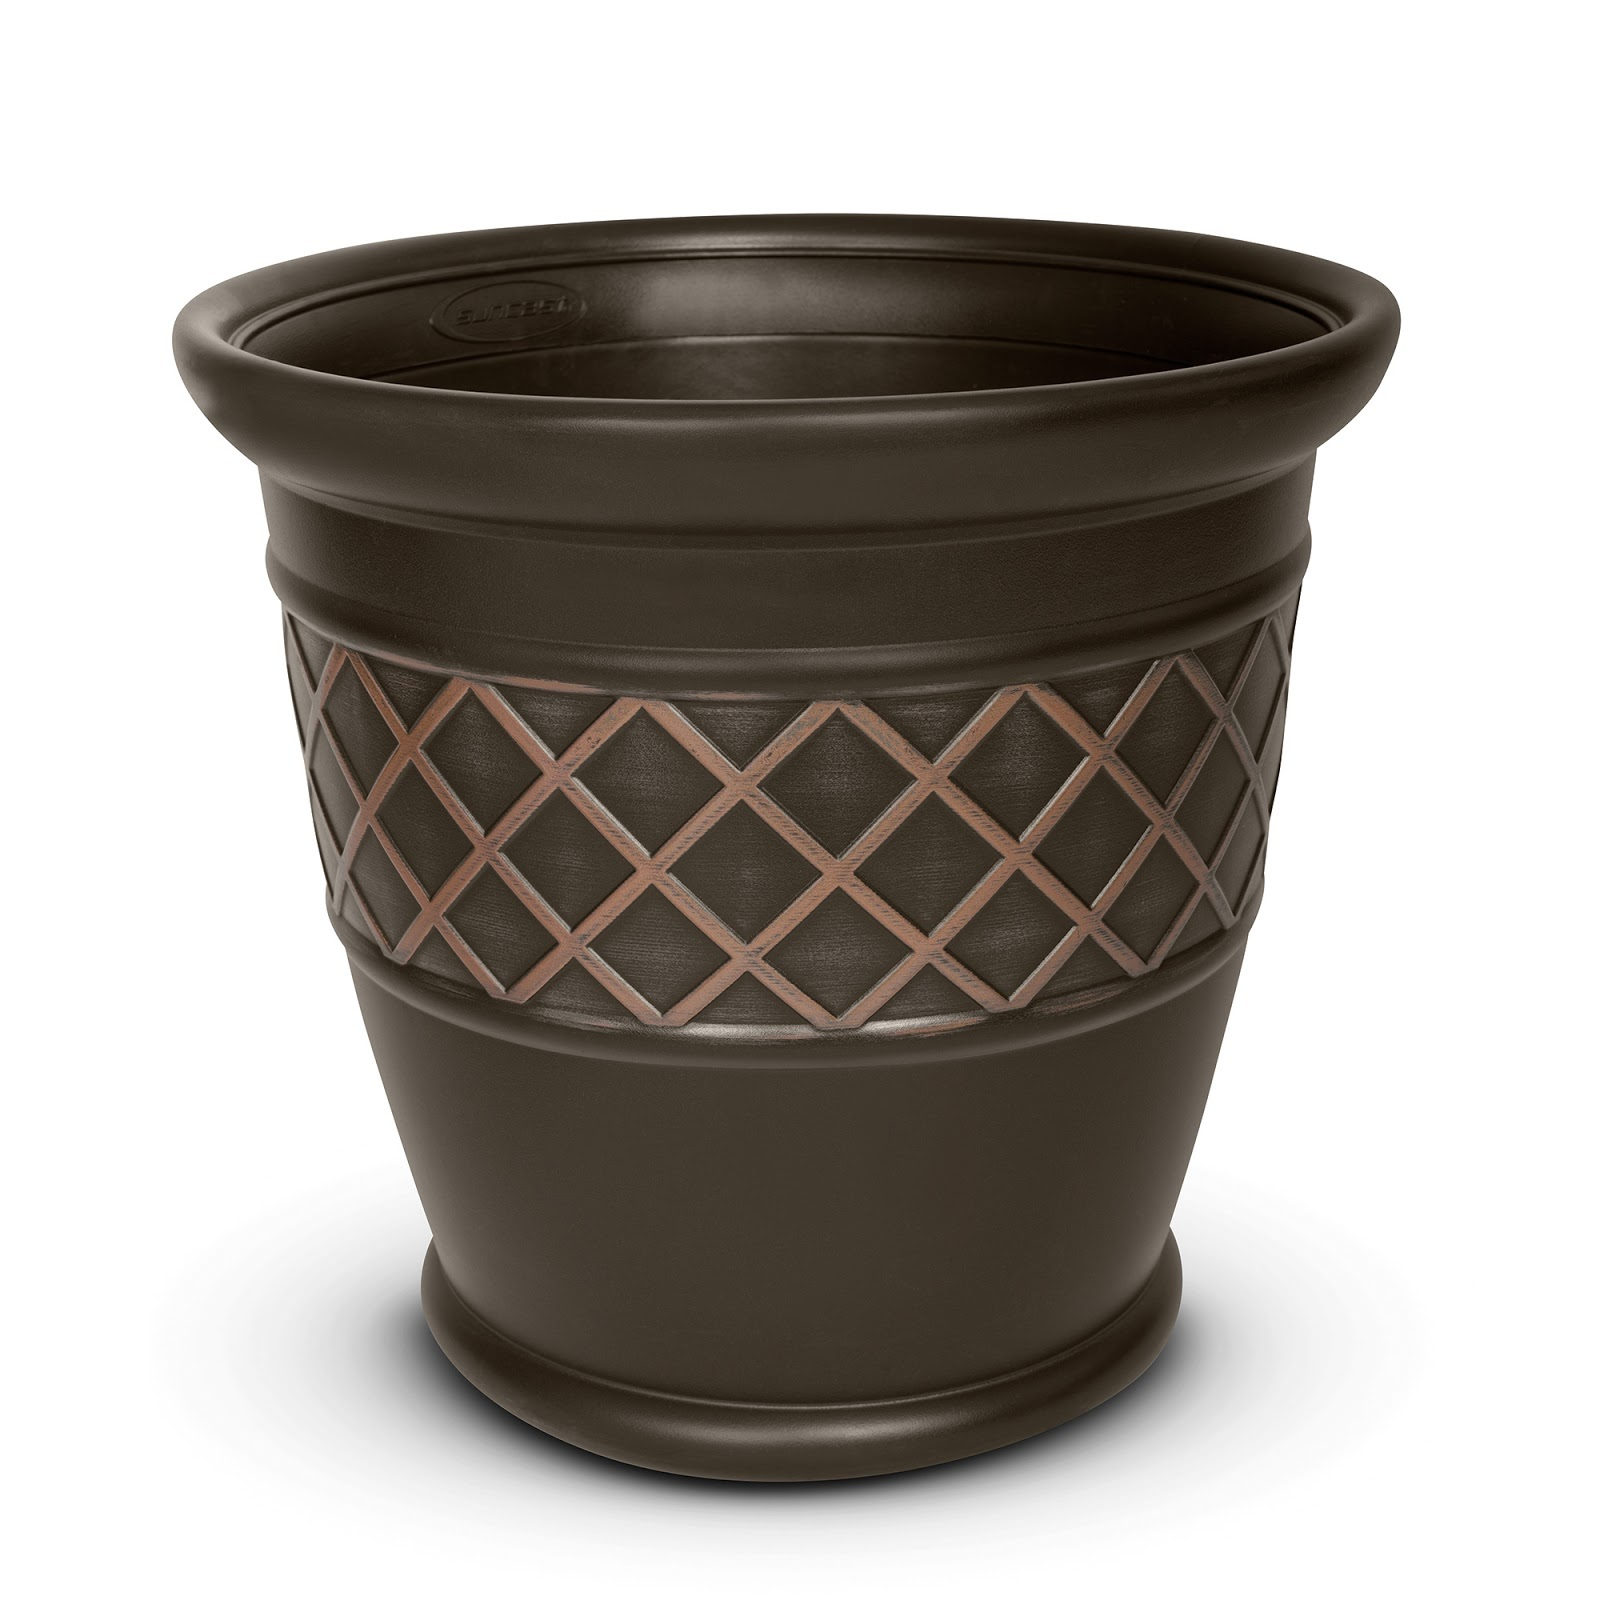 Better Homes and Gardens Lattice Planter photo